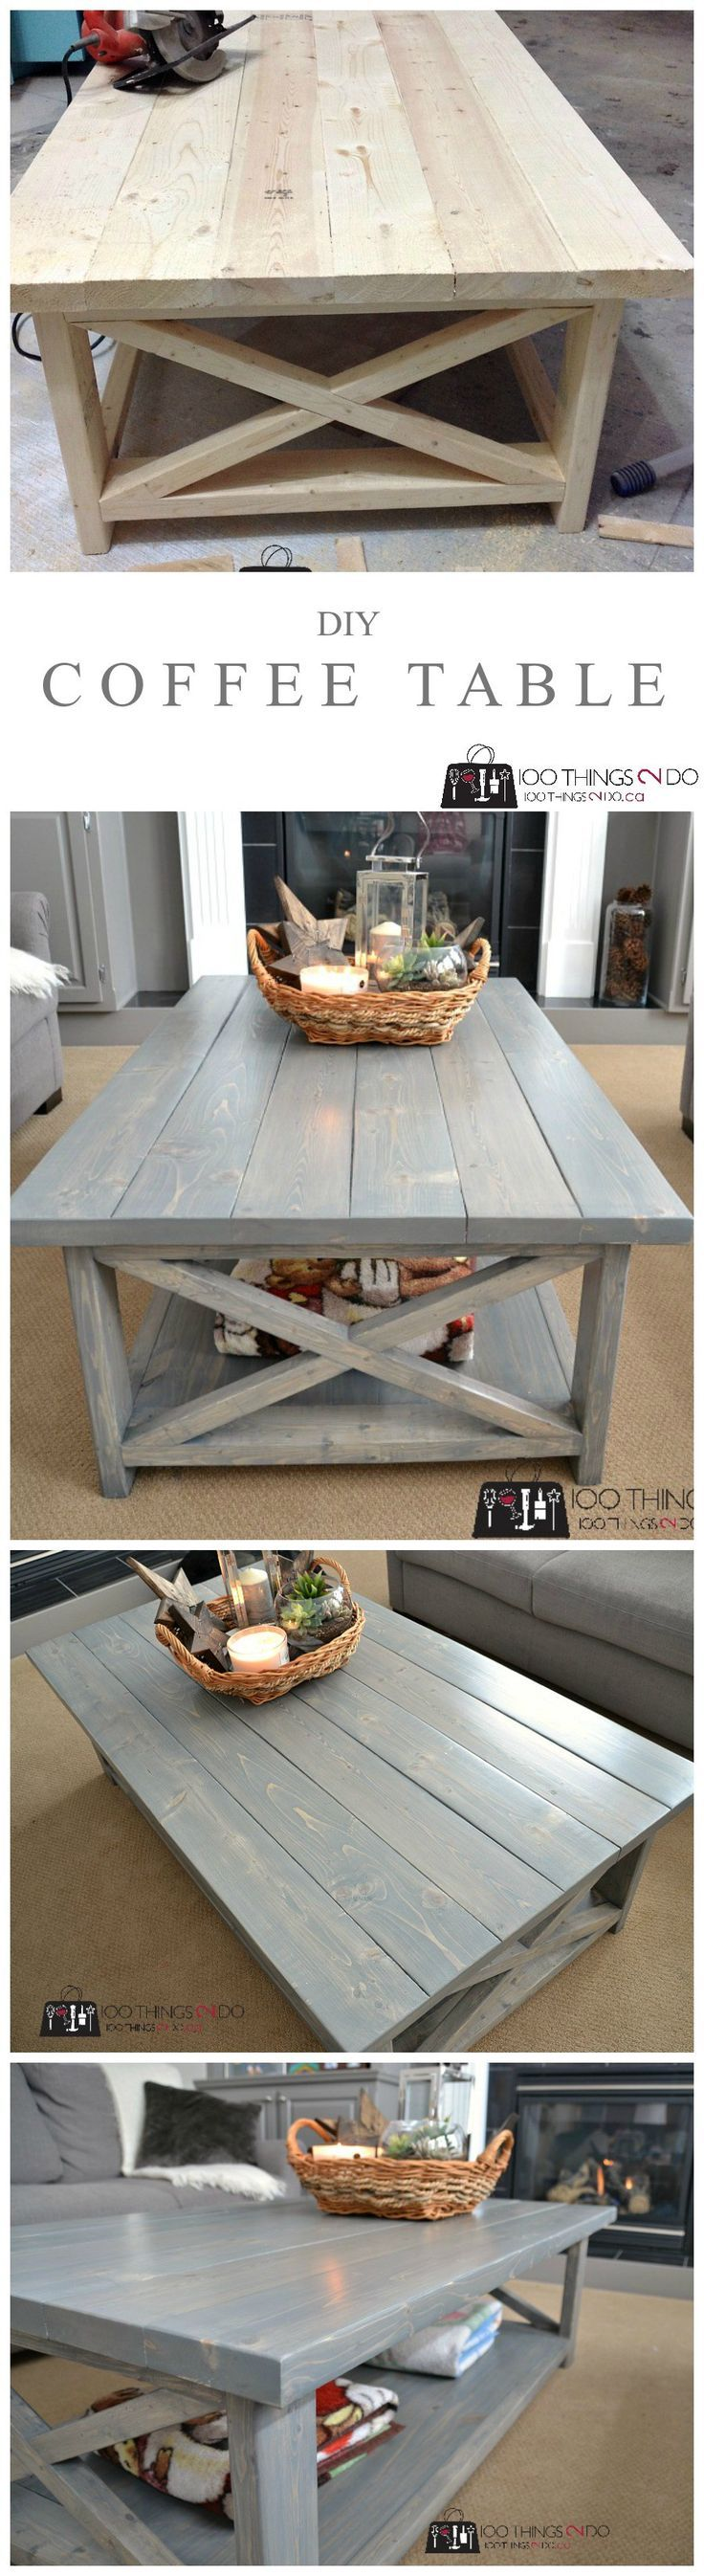 Info's : DIY Rustic X coffee table - build it in an afternoon! (Beginner project)